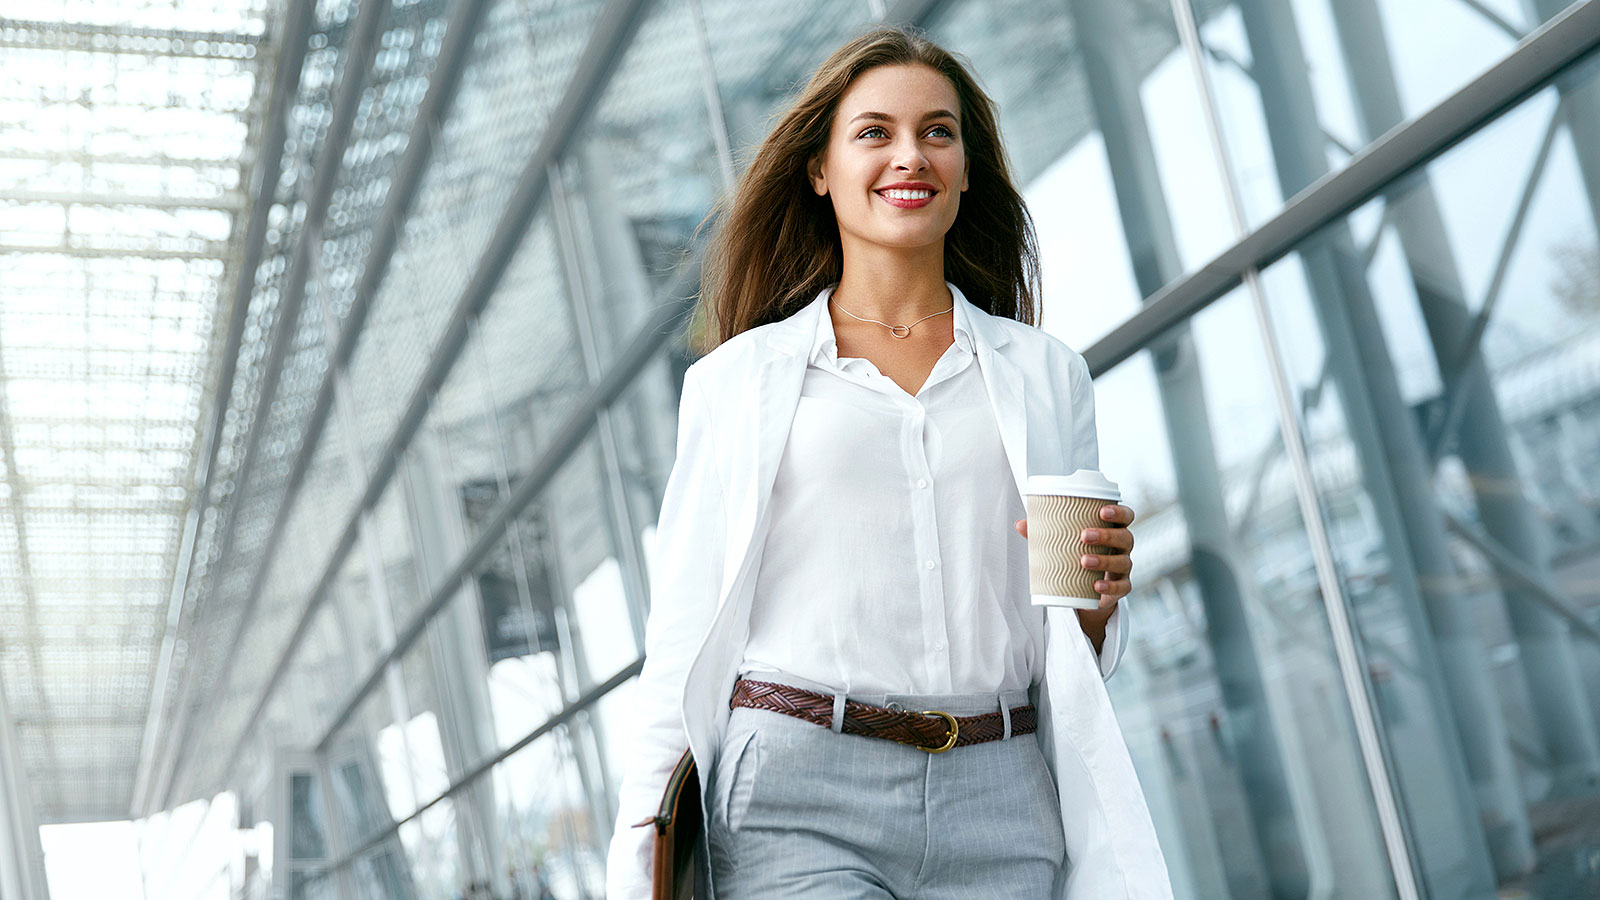 What Clothes To Wear To Dress As A Leader At Work?